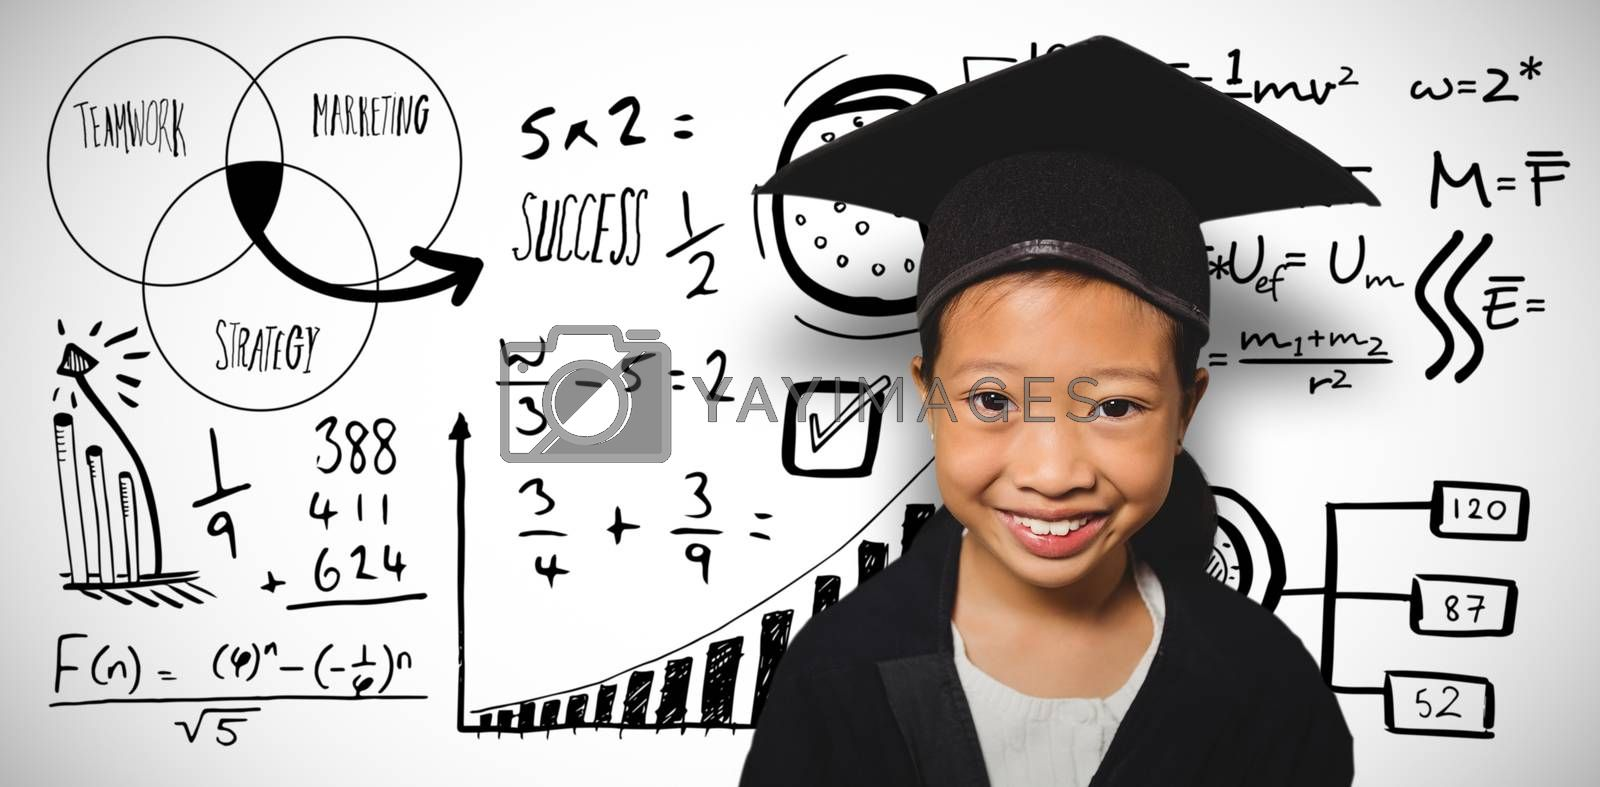 Composite image of portrait of smiling girl wearing mortarboard by Wavebreakmedia